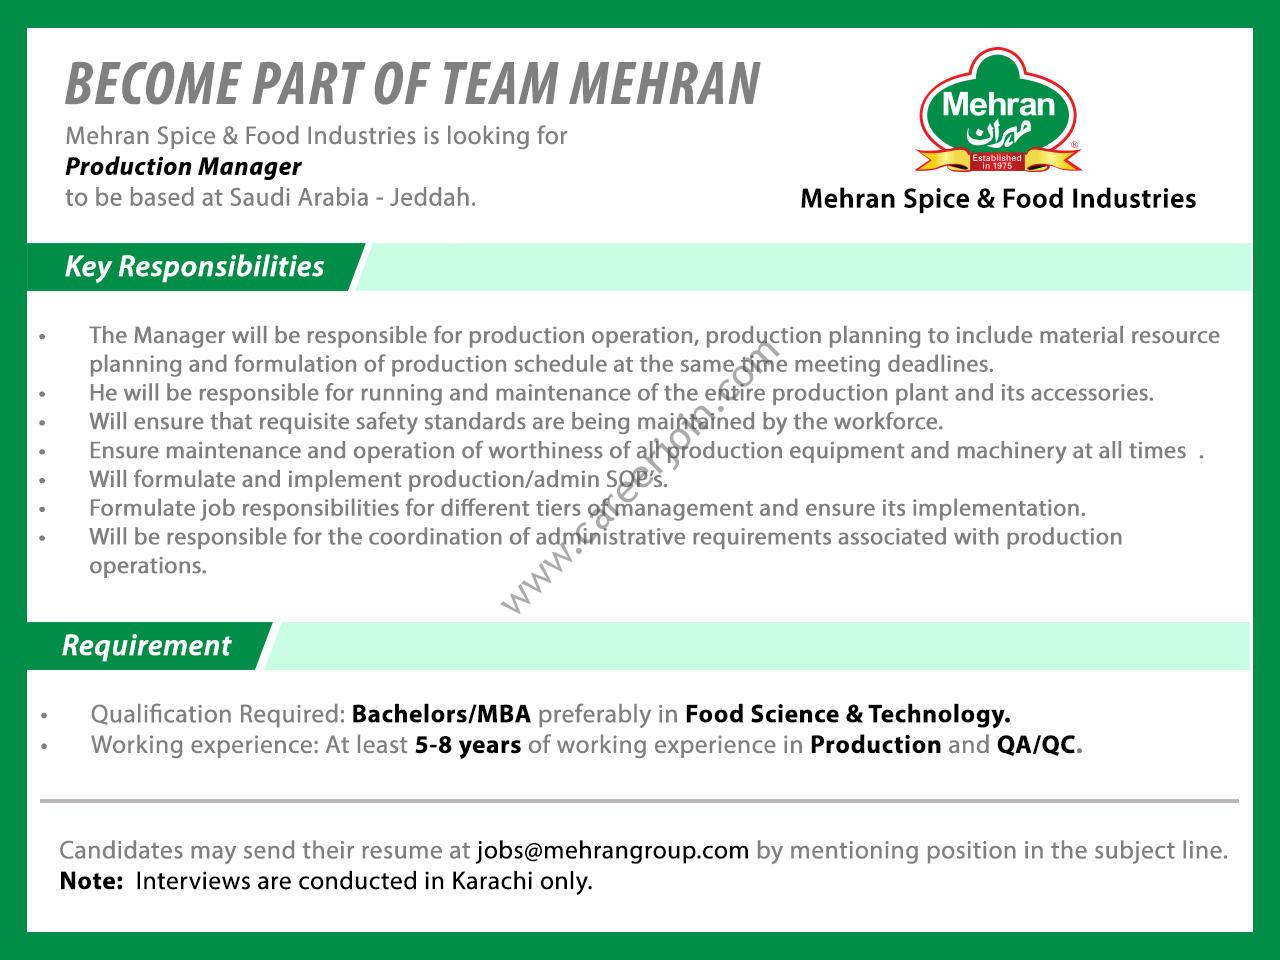 Mehran Spice & Food Industries Jobs Production Manager